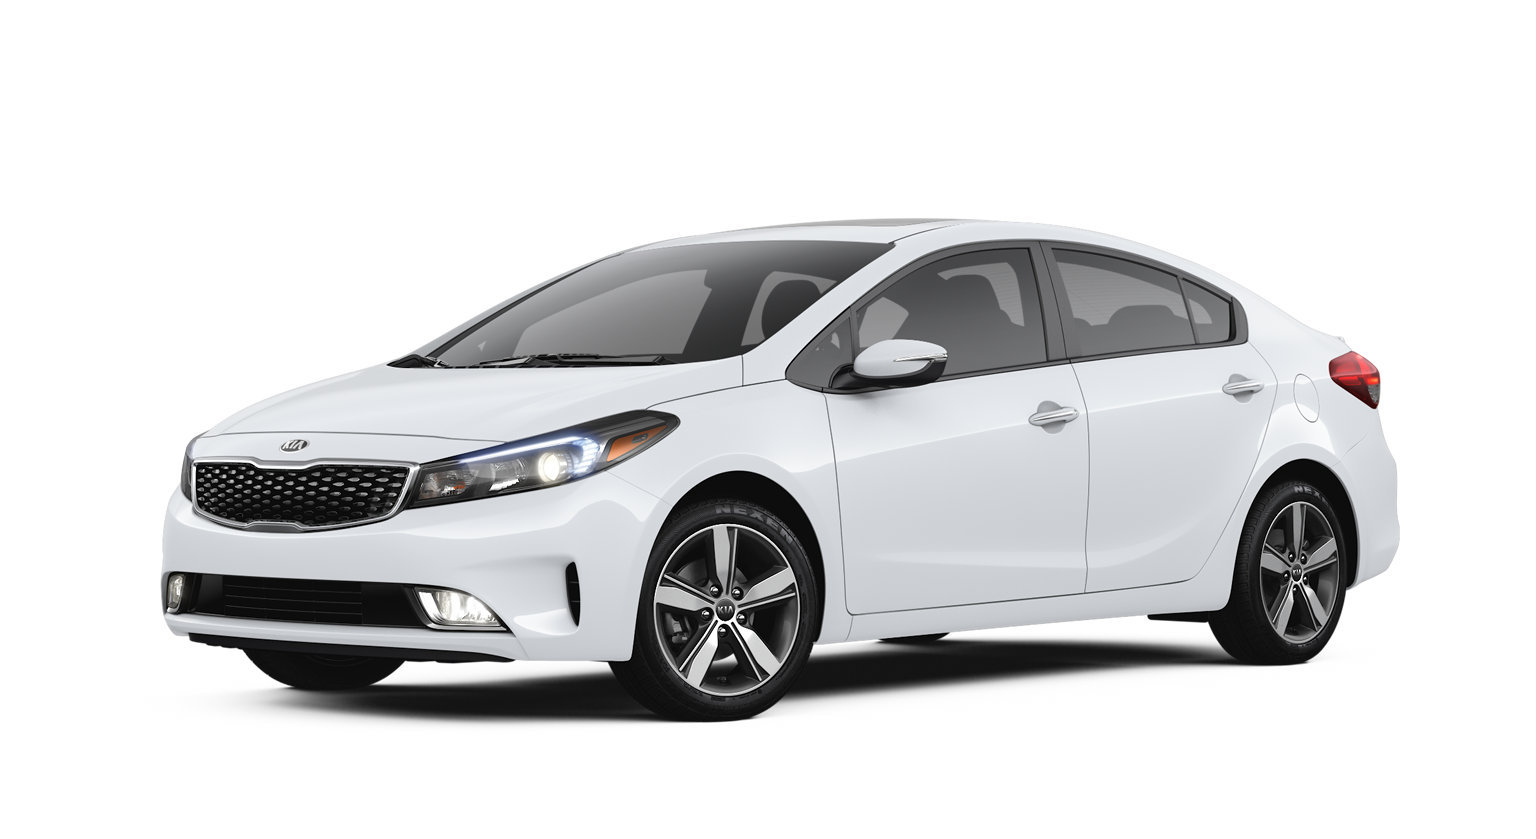 2018 Kia Forte Vehicle Customization Kia Kia Kia Forte Sedan